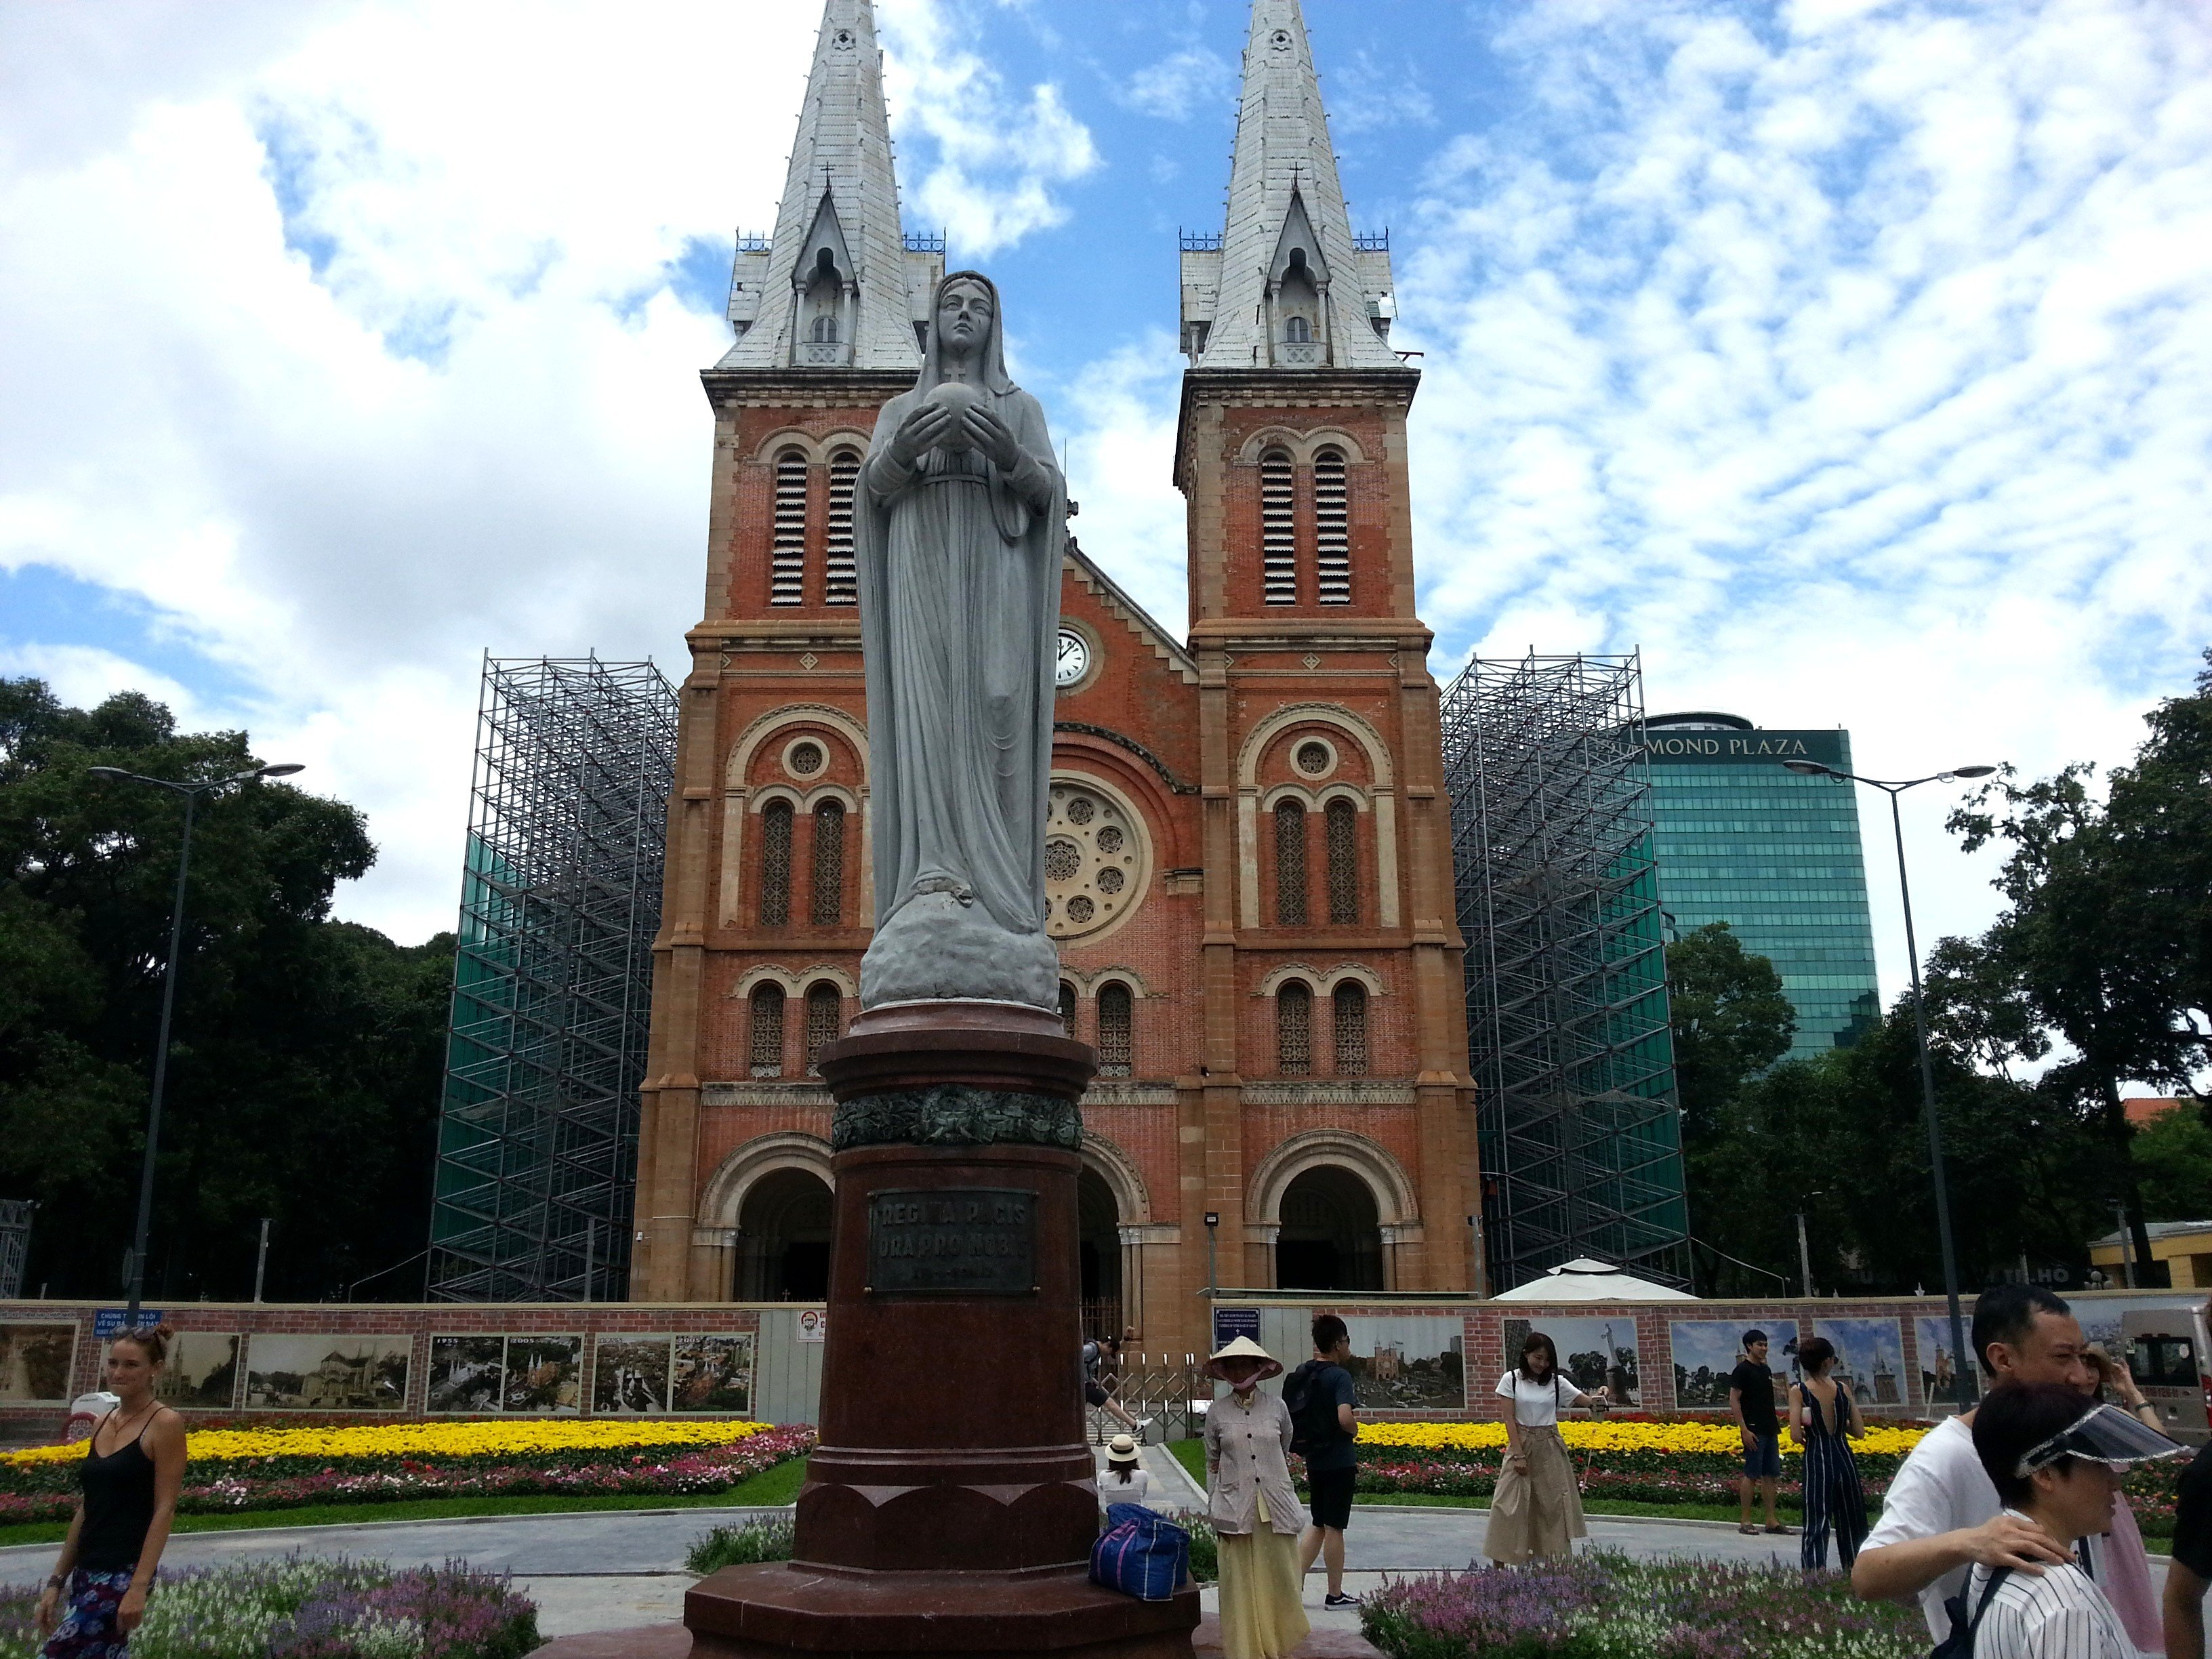 Statue of the Virgin Mary in front of the Cathedral